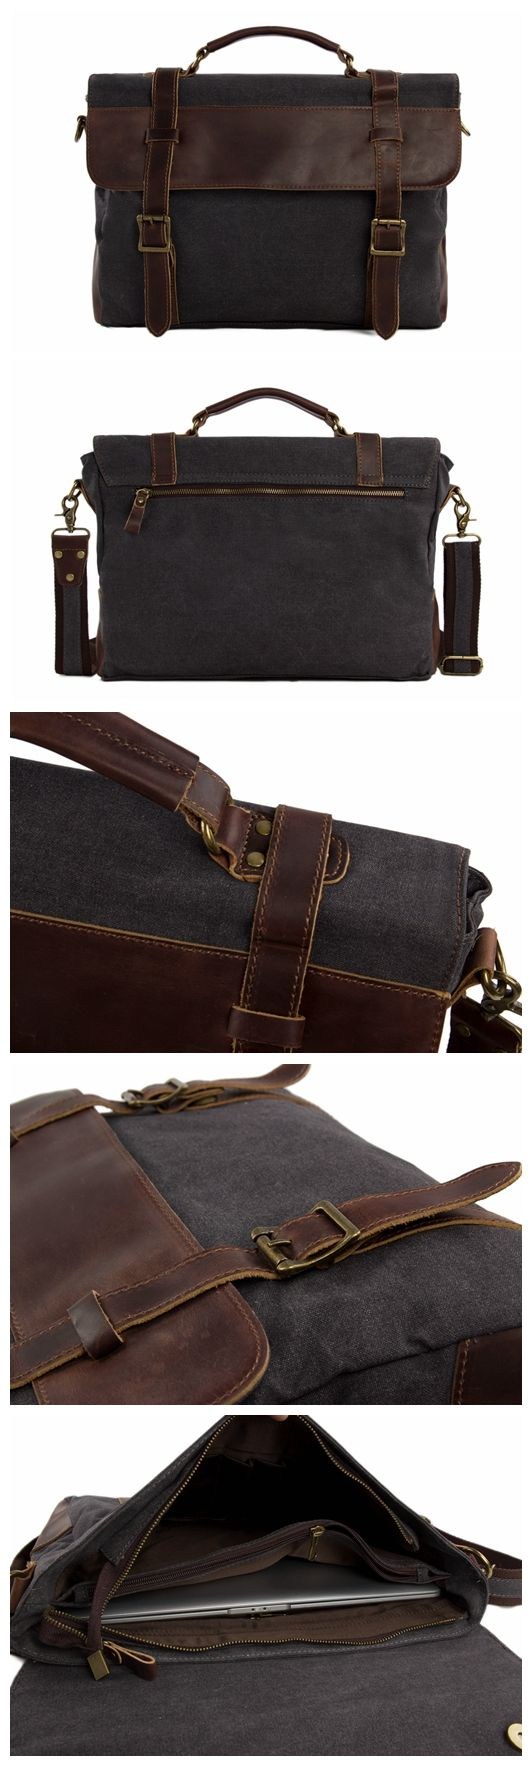 High Fashion Canvas Leather Briefcase, Messenger Bag Canvas Shoulder Bag